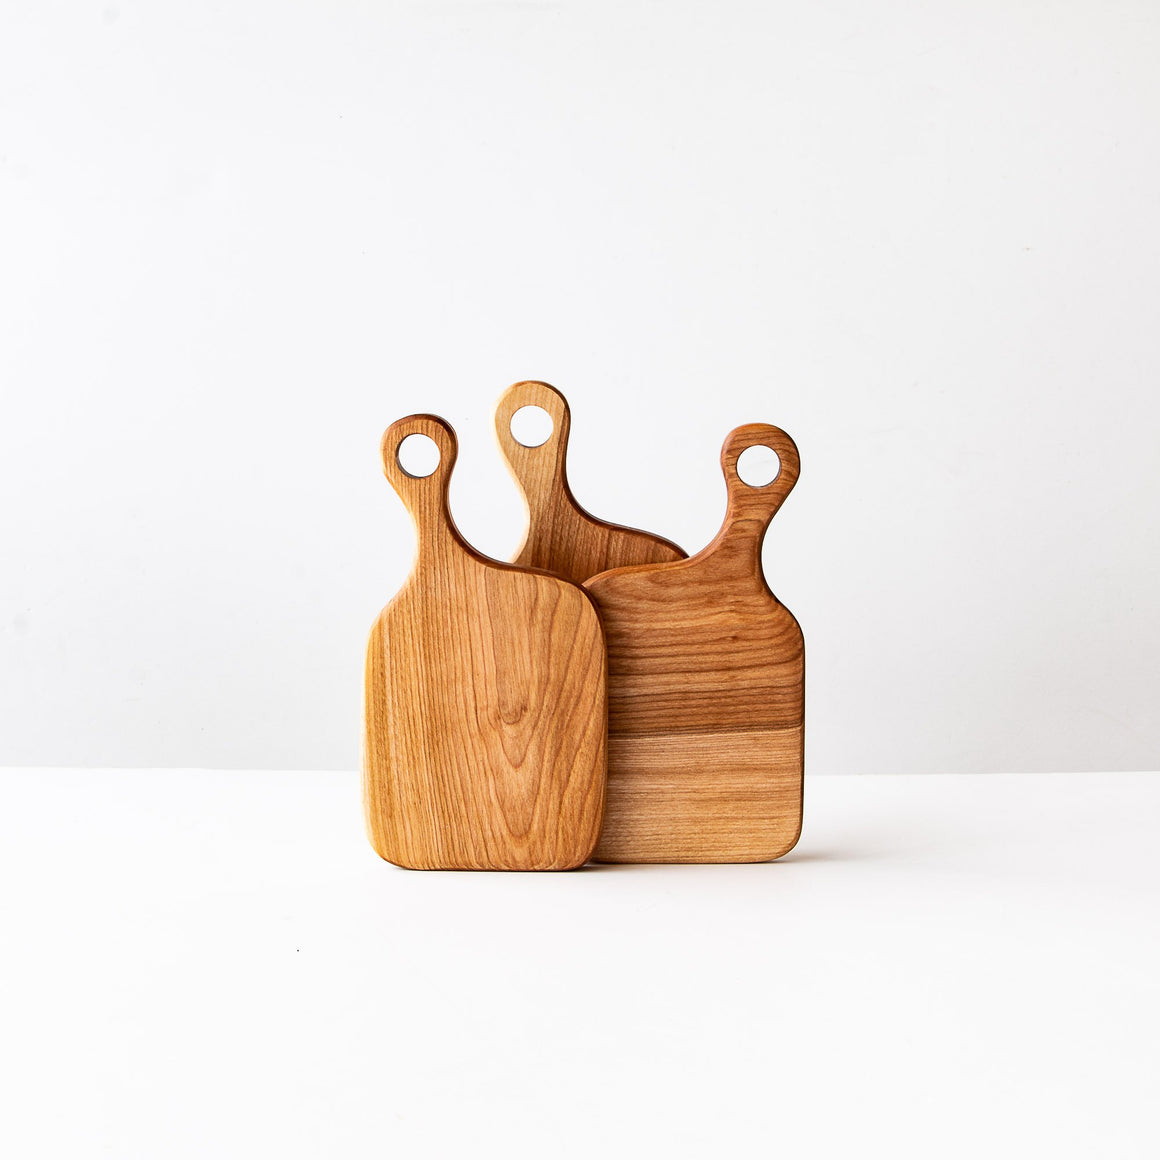 Smôl - Handmade Cutting Board in Birch - Sold by Chic & Basta